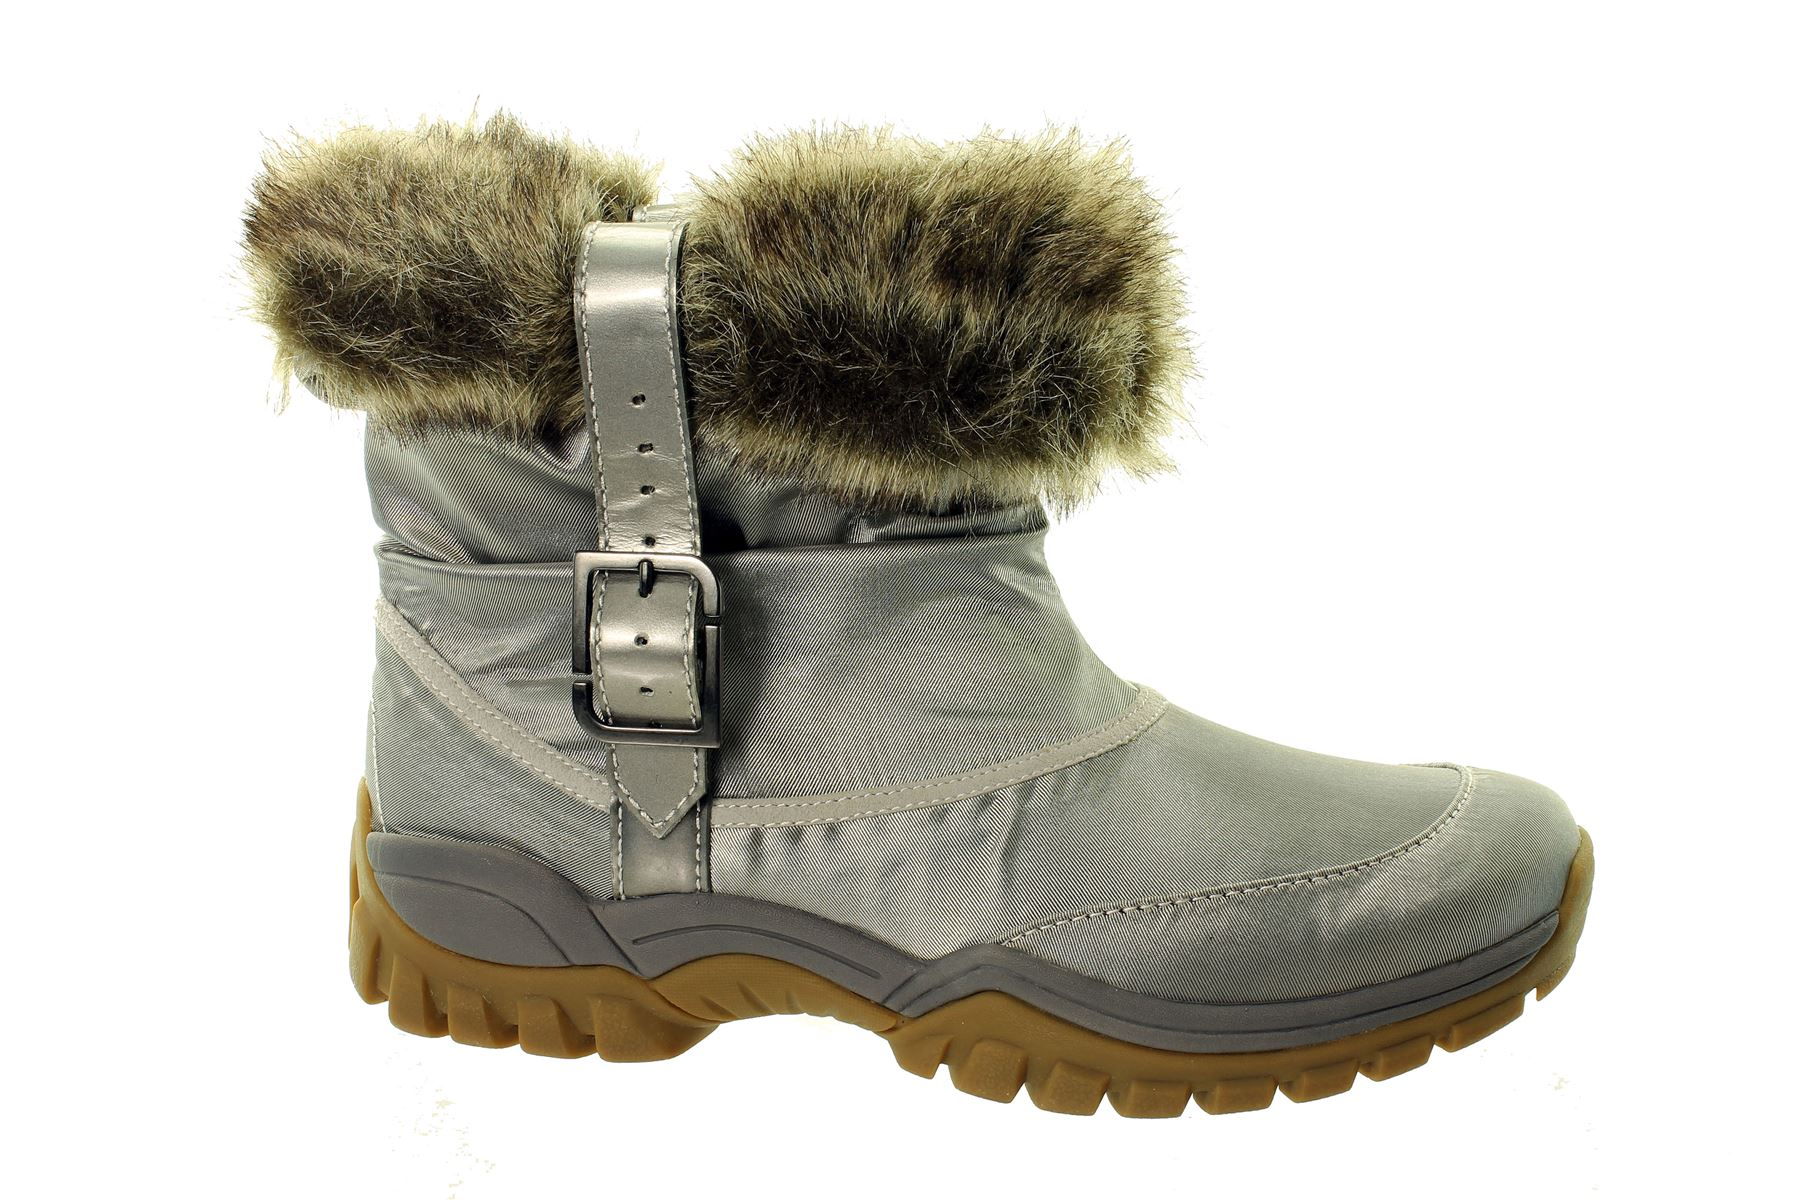 Rockport Finna Scrunch K59232 Womens Boots~D7~UK LIMITED SIZES 3 TO 6.5 ONLY~